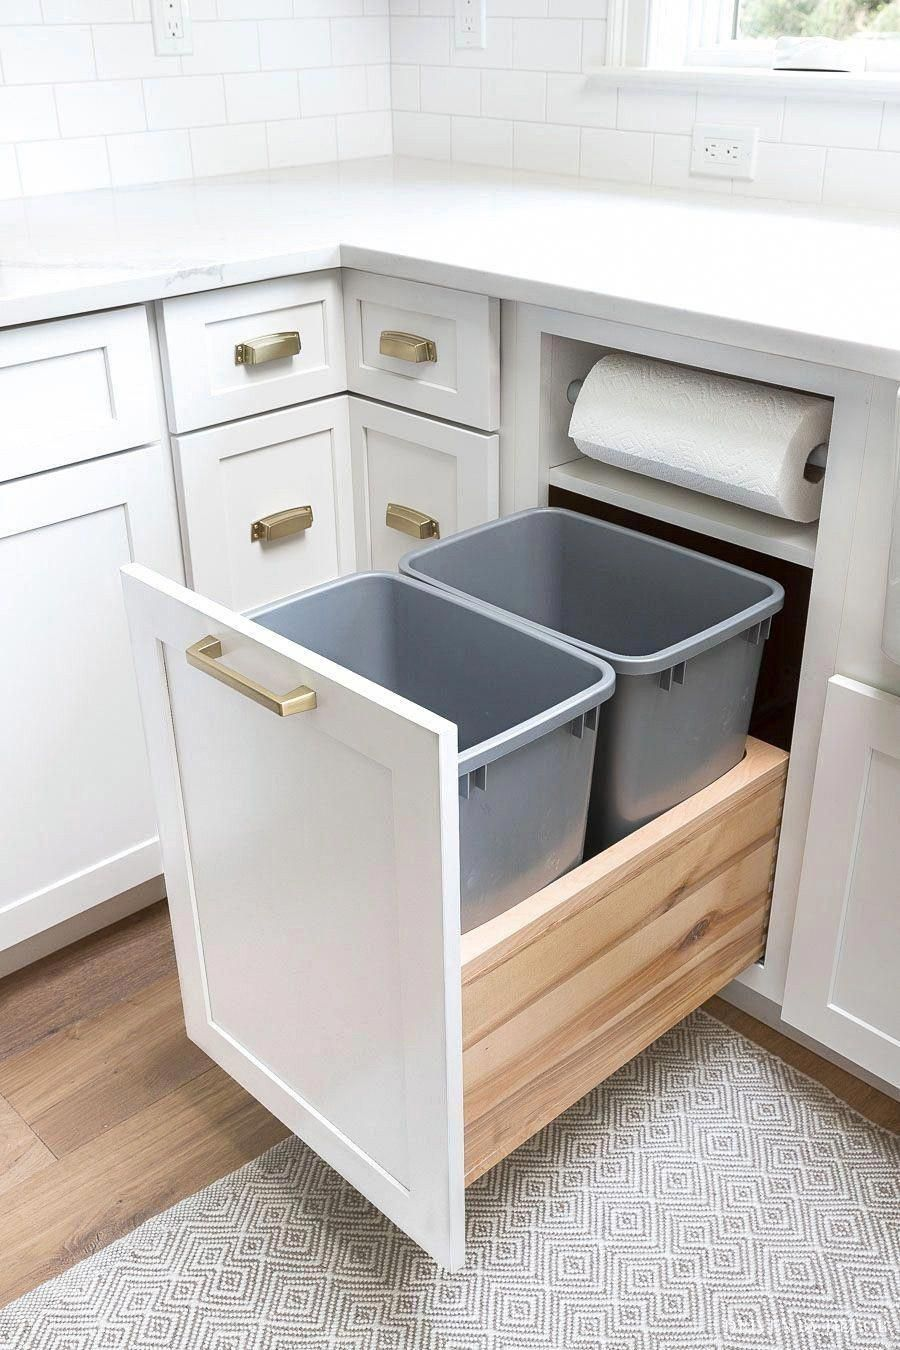 Lots Of Believe That To Redesign A Kitchen Location You Have To Change Everythi Kitchen Cabinets Storage Organizers Kitchen Cabinet Storage Diy Kitchen Storage